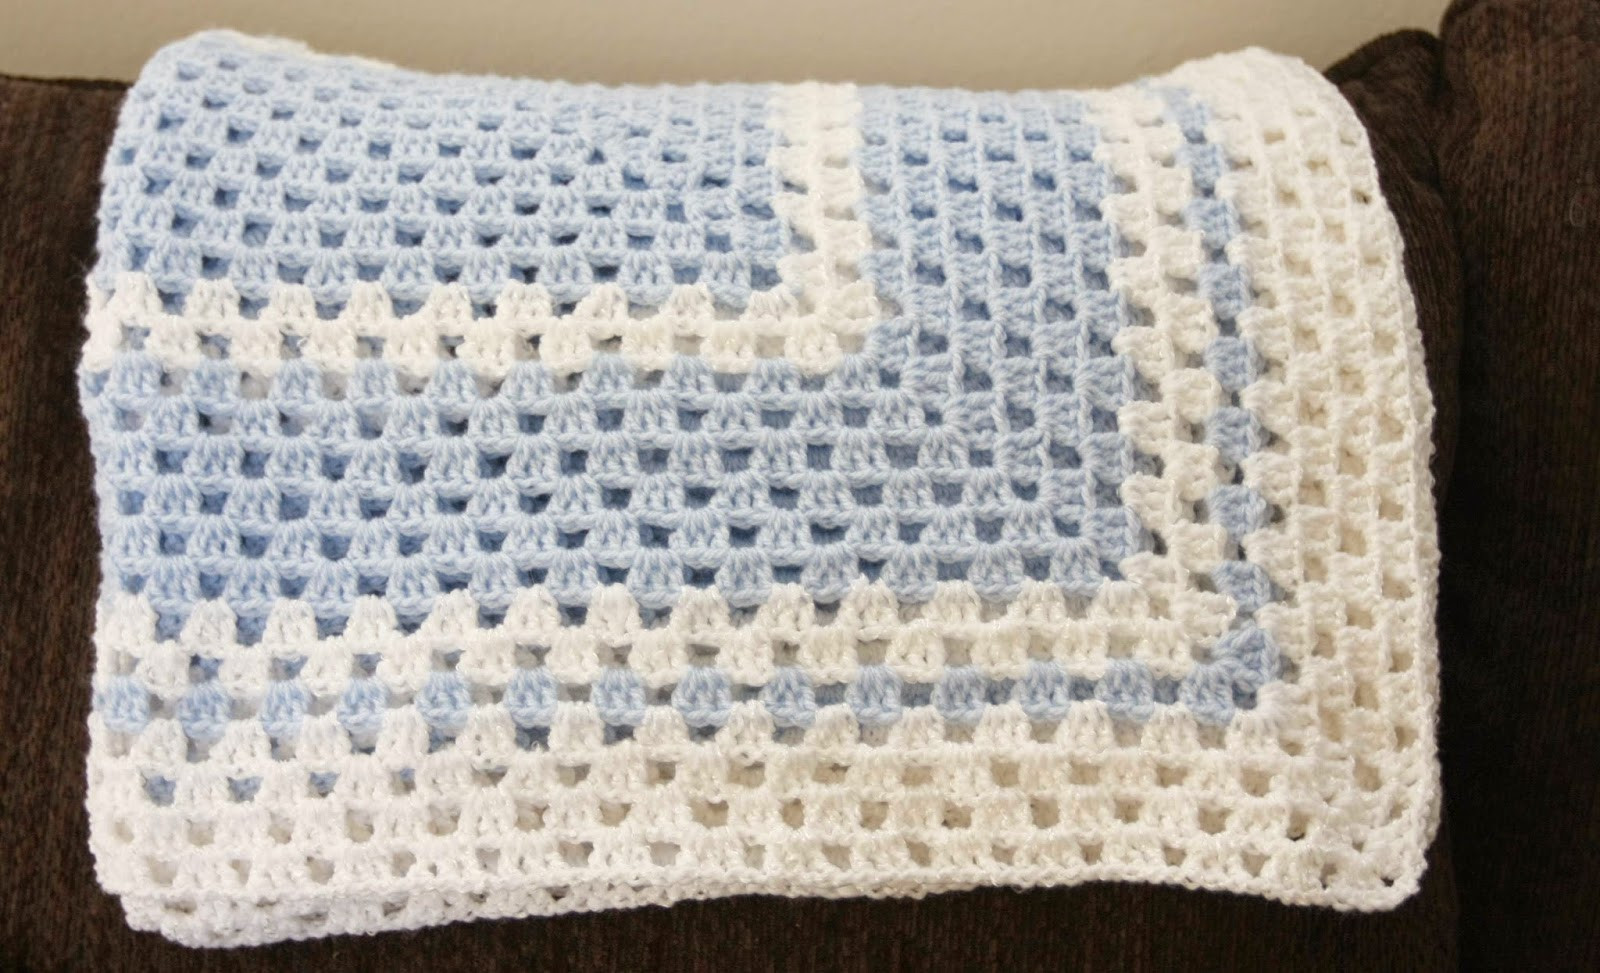 Free Easy Crochet Baby Blanket Patterns Best Of Best Free Crochet Blanket Patterns for Beginners On Pinterest Of New 48 Models Free Easy Crochet Baby Blanket Patterns